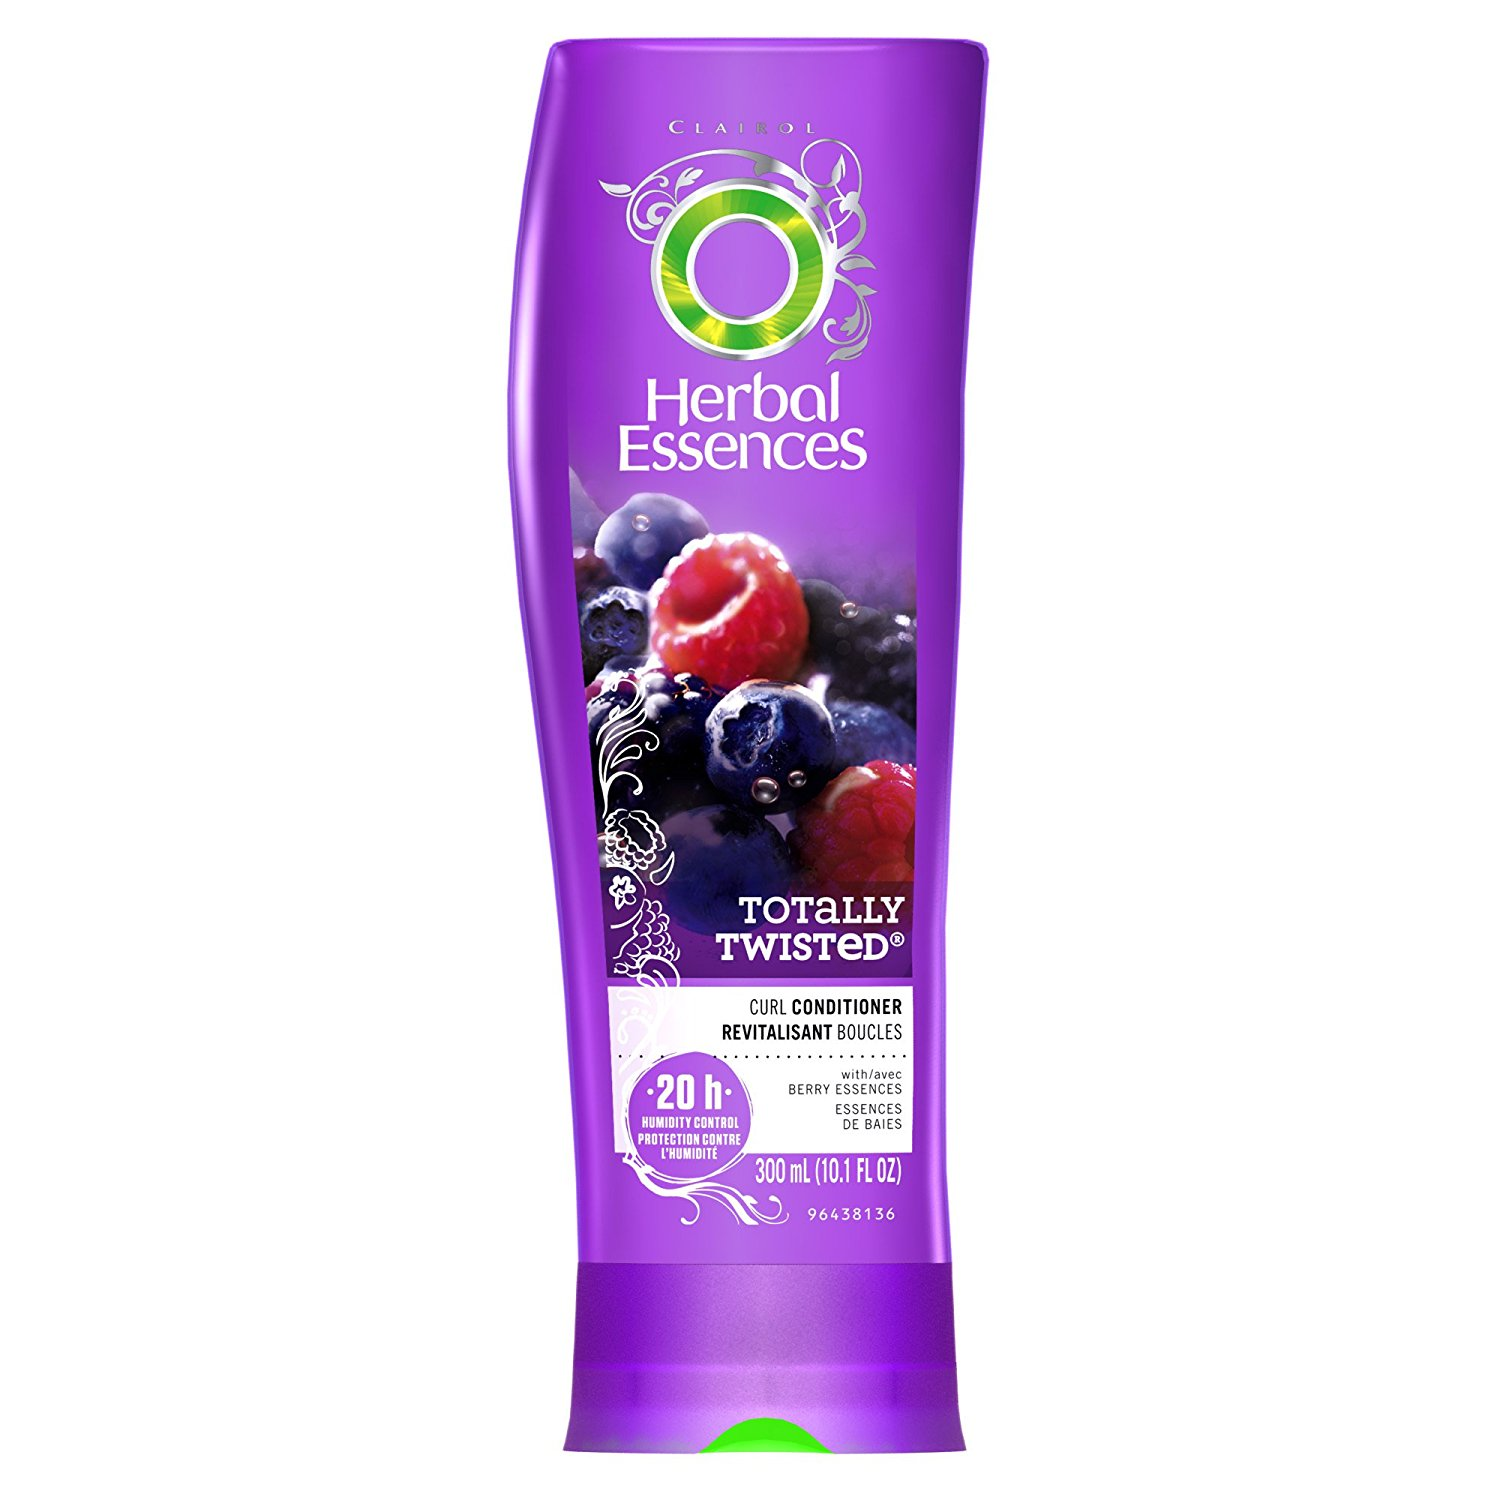 Herbal Essences Totally Twisted Curl Conditioner 10.1 Fluid Ounce (Pack of 2)